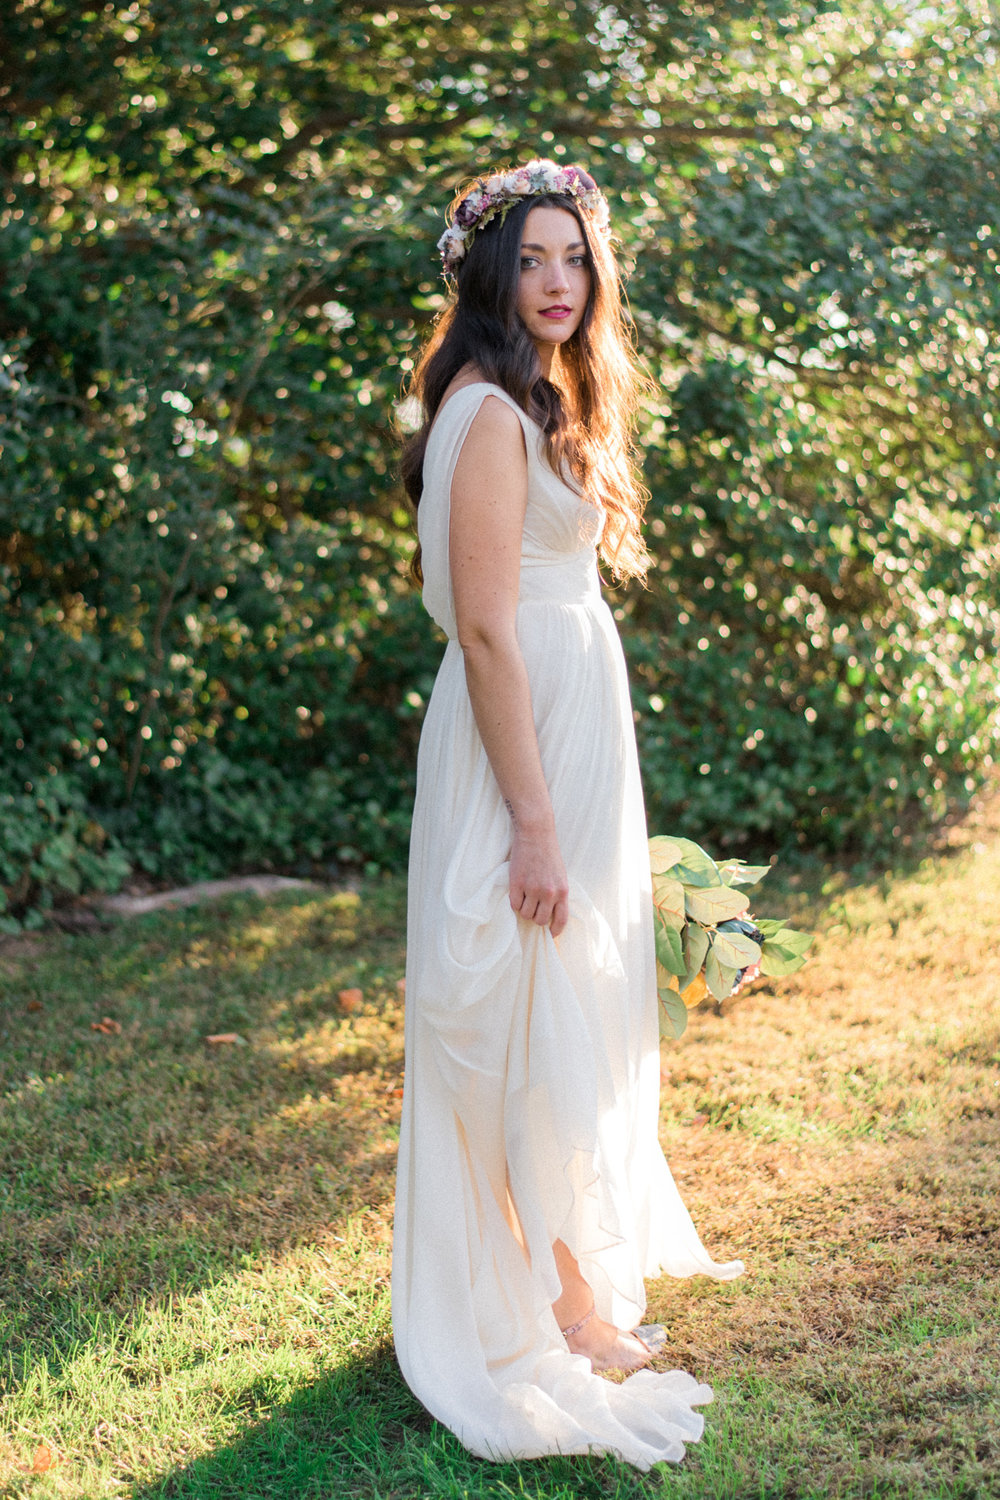 The_Trivium_Estate_Forest_VA_Wedding_Flower_Crown_boho_wedding_classic_wedding_Virginia_Wedding_photographer076.jpg